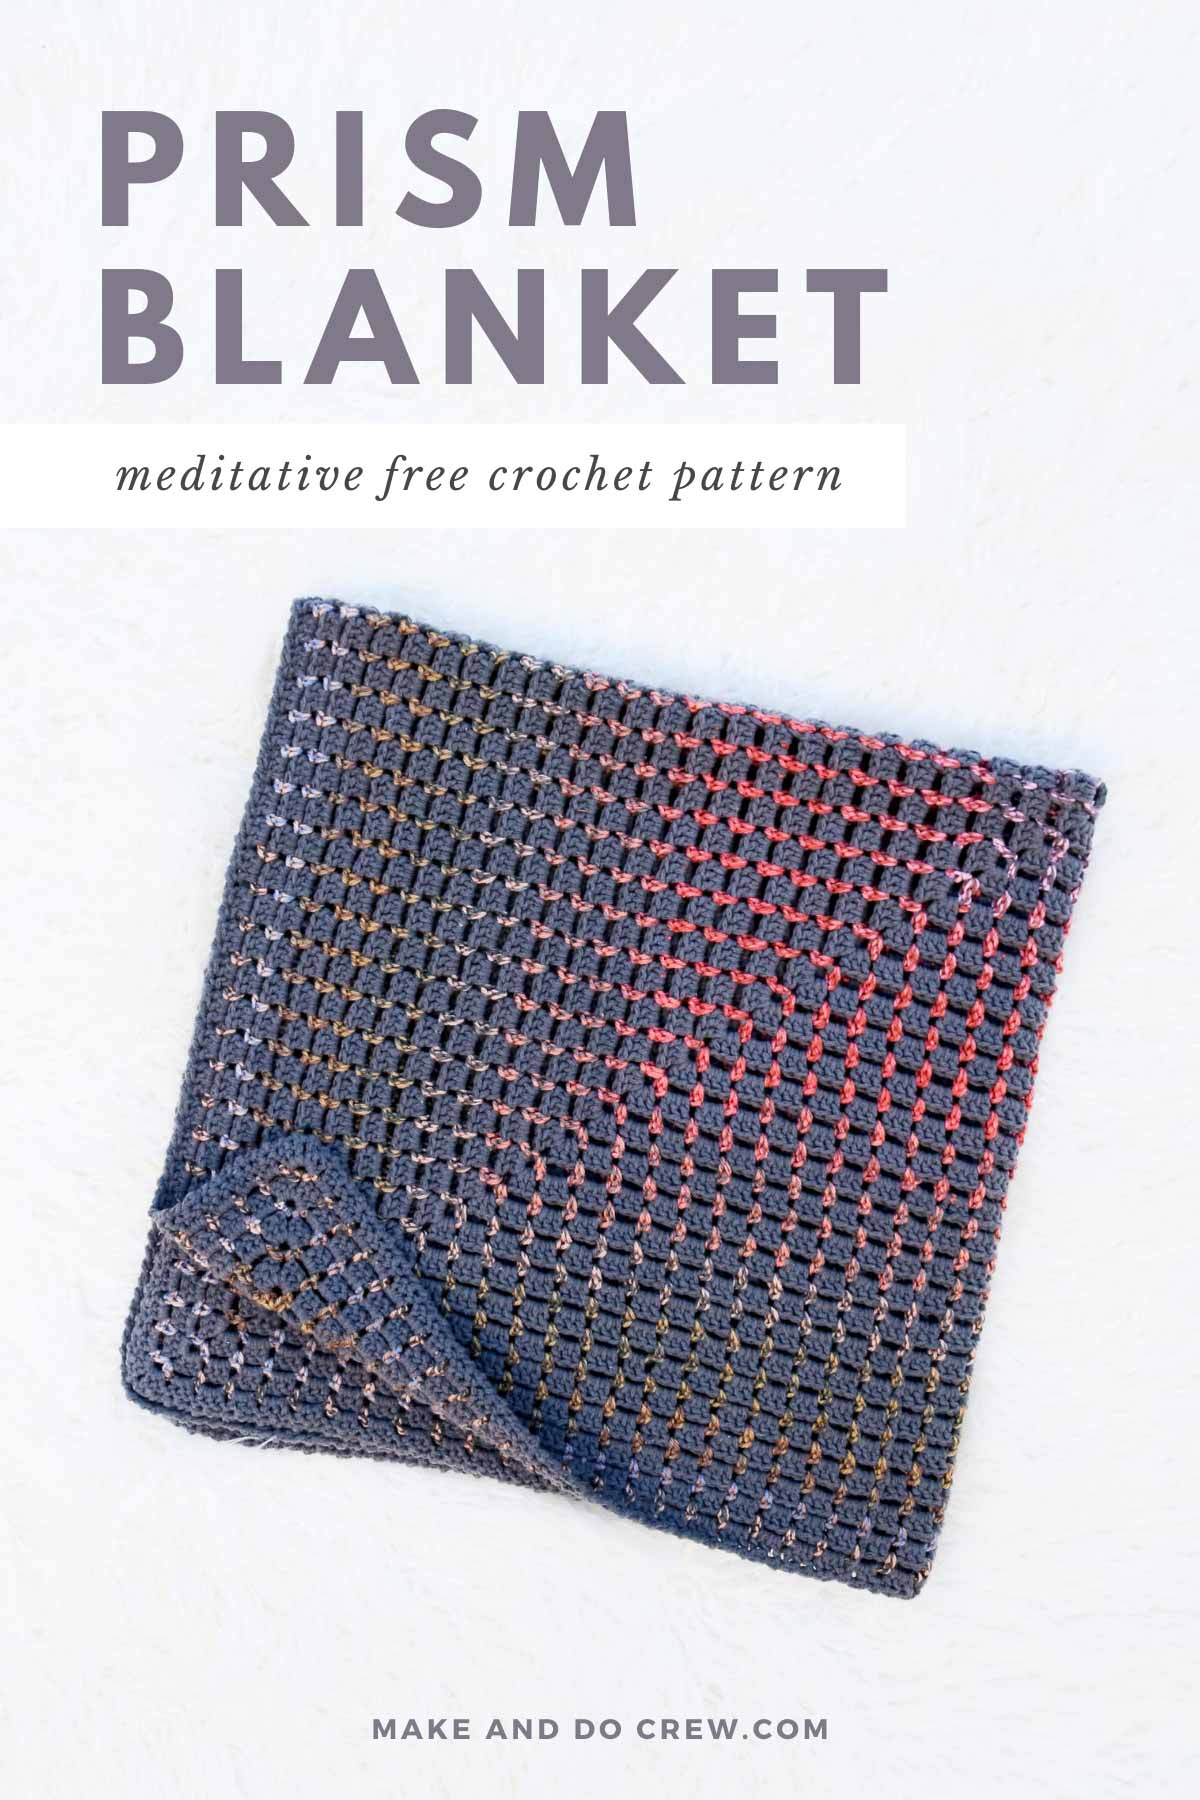 Crochet a blanket that radiates from the center outward by combining self-striping yarn and a melodic, relaxing stitch. Experiment with solid-colored or chunkier to personalize your own unique rainbow baby crochet blanket!